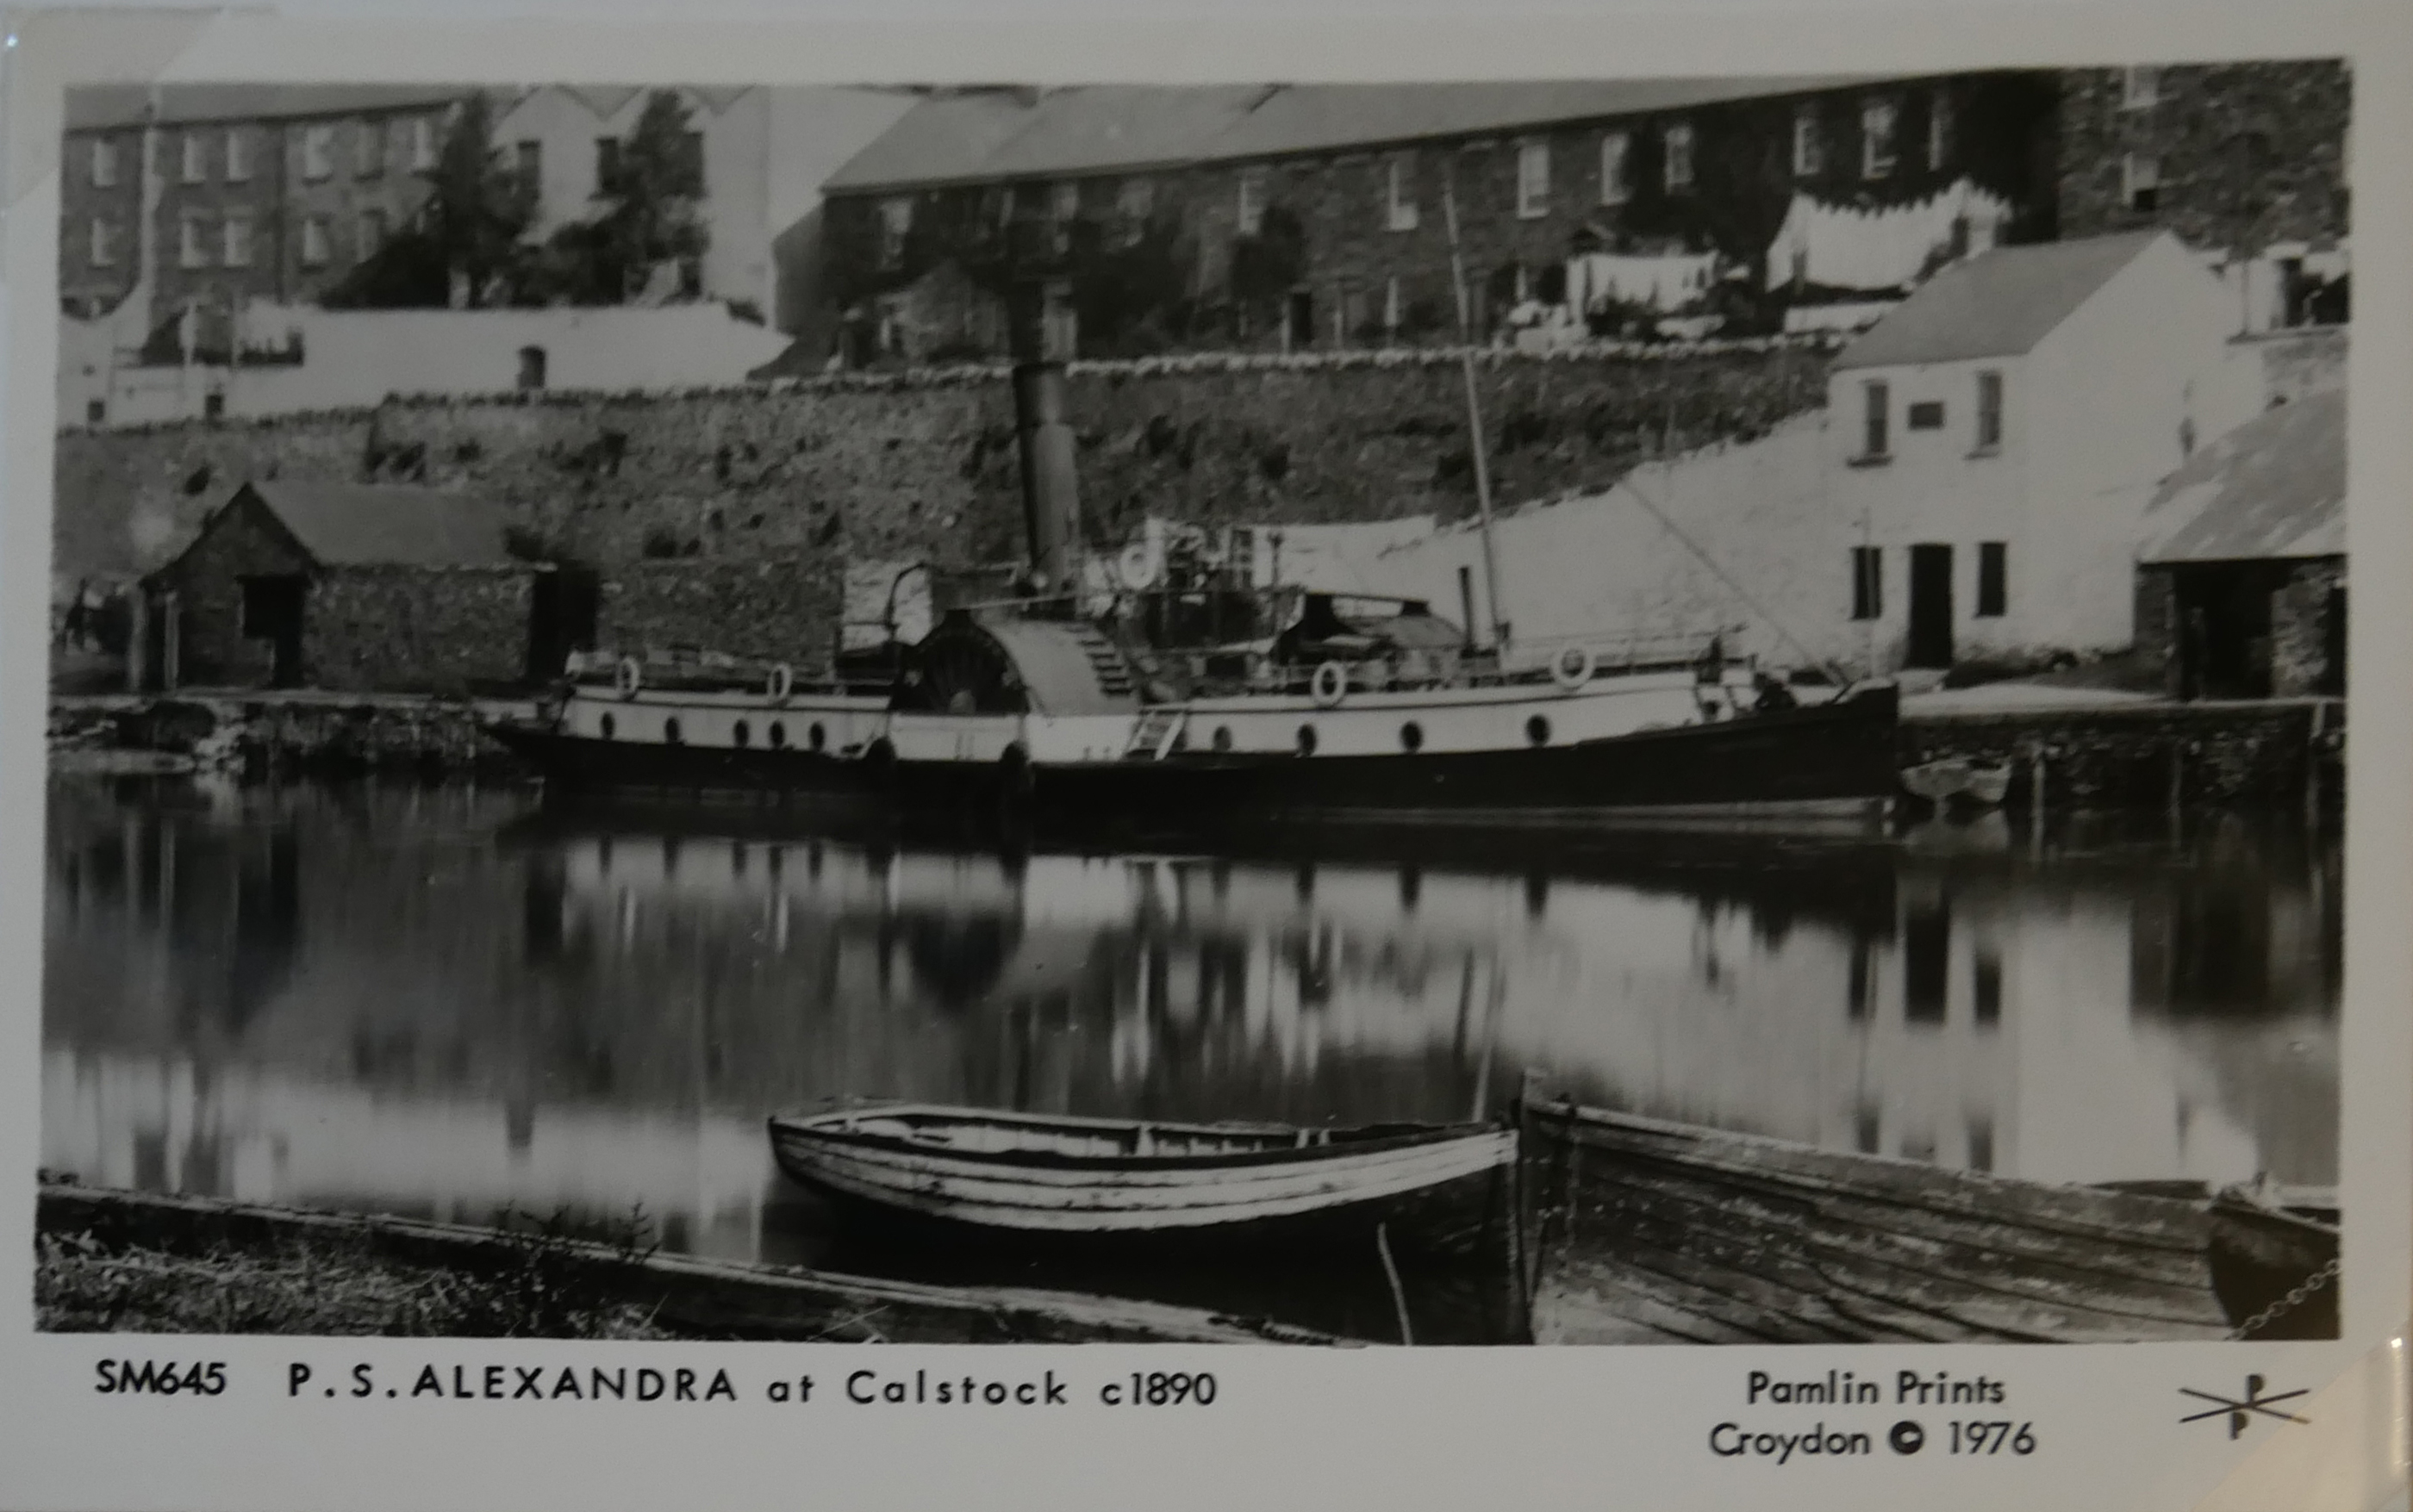 AN ALBUM OF BLACK AND WHITE PHOTOGRAPHIC POSTCARDS OF STEAM SHIPS Issued by Pamlin Prints, including - Image 7 of 10